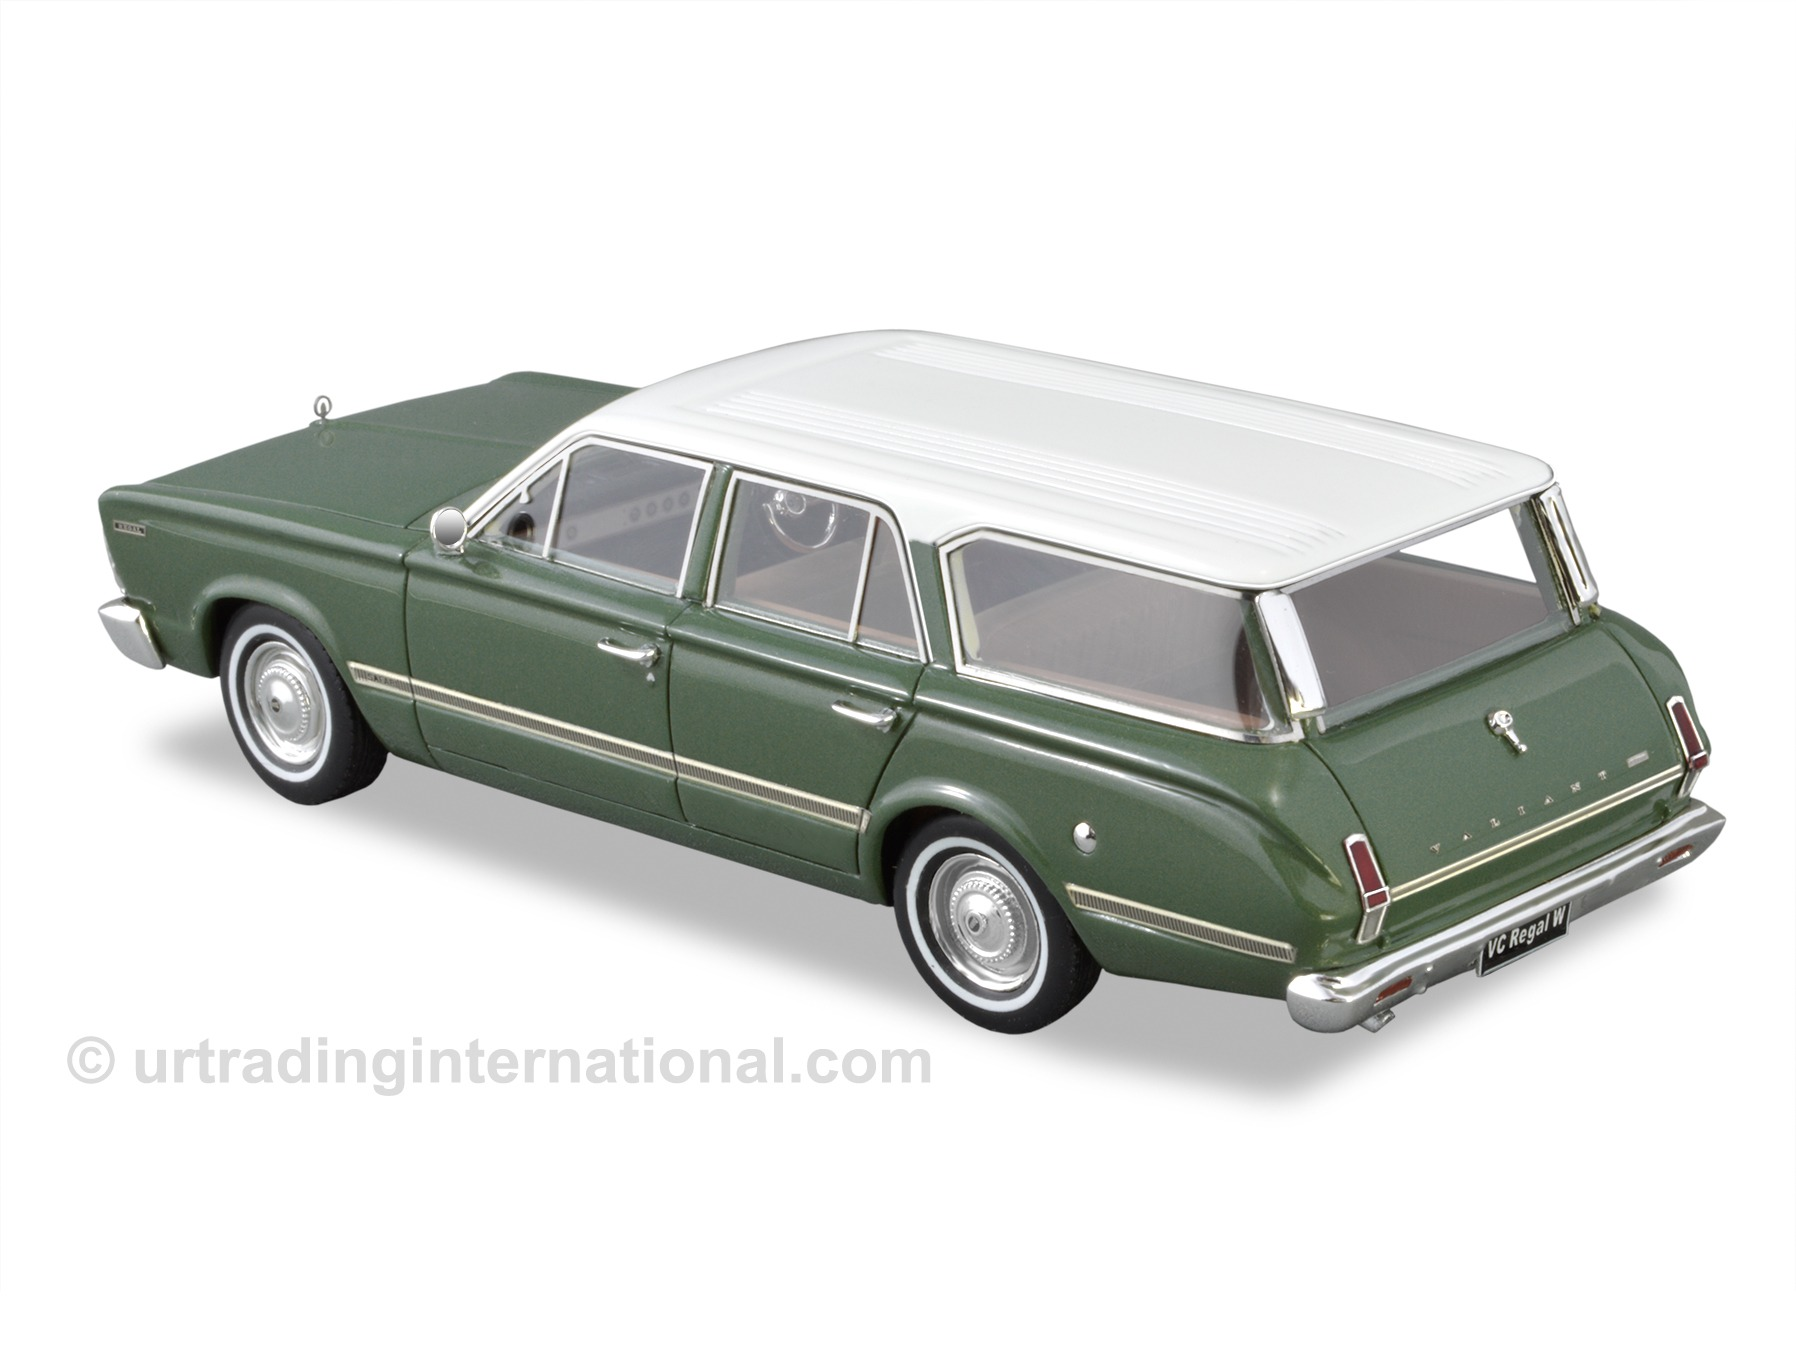 1967 VC Valiant Regal Safari Wagon – Olive Green / White Roof